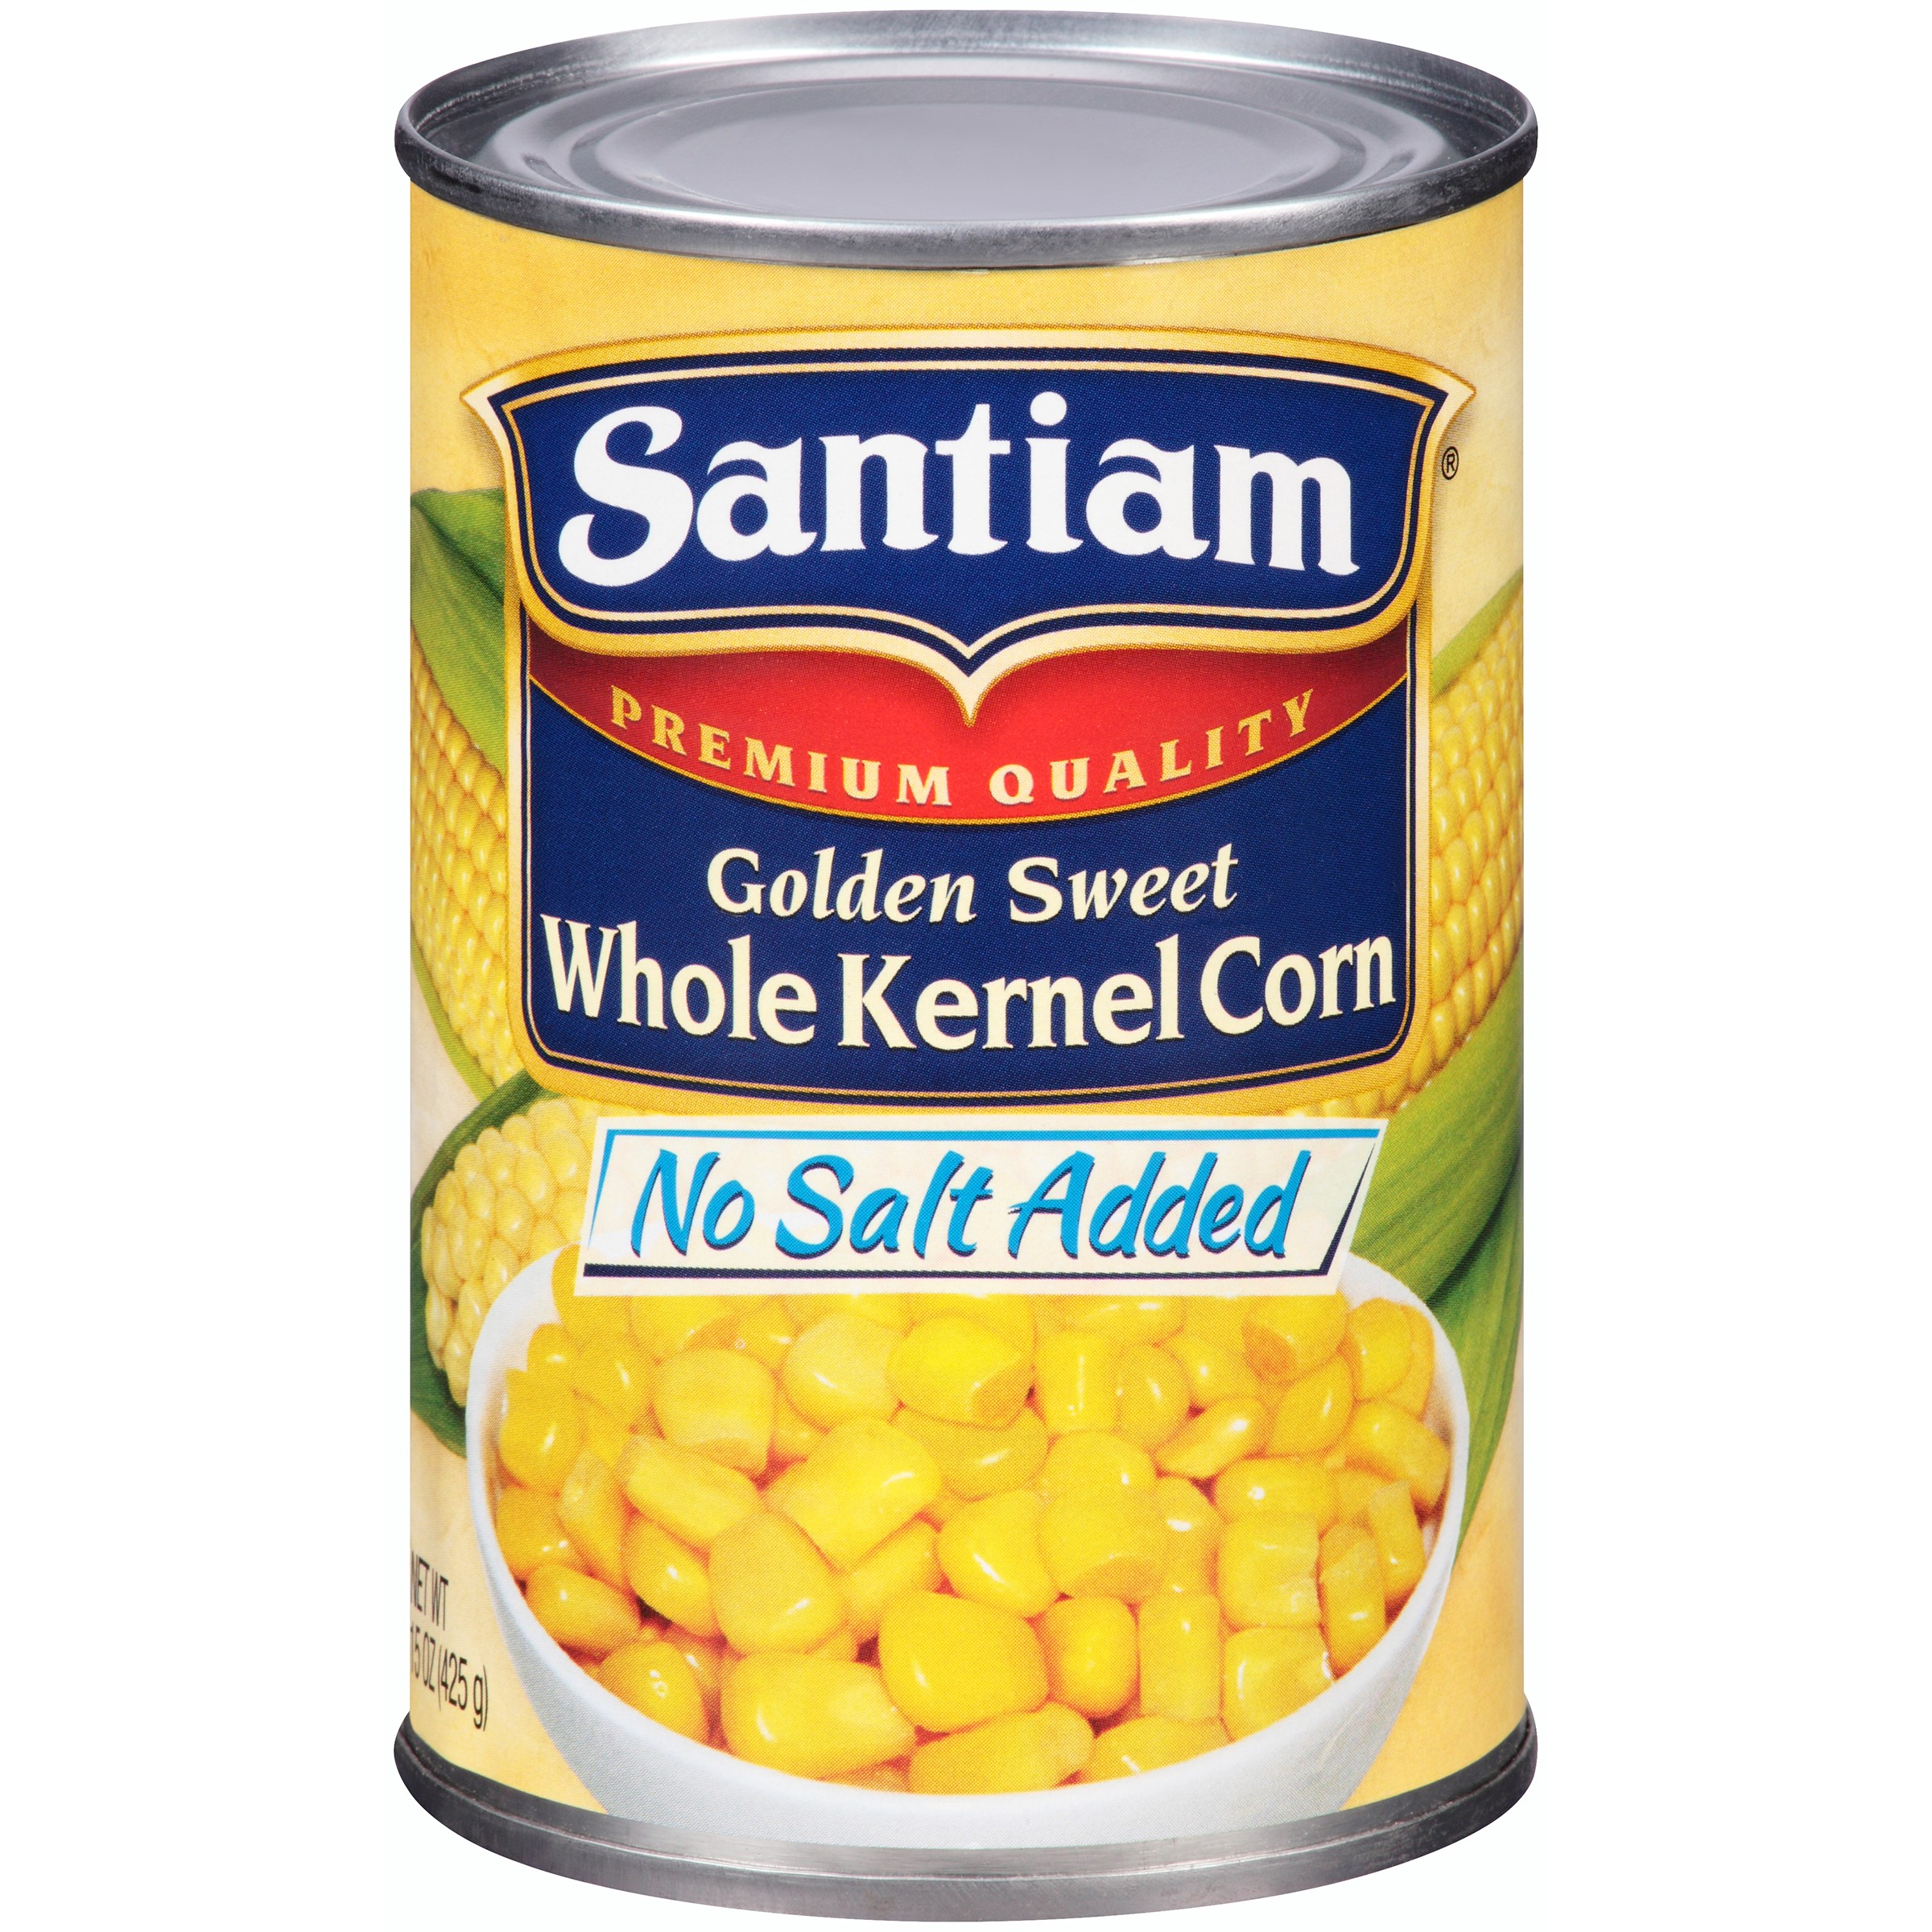 Santiam® No Salt Added Golden Sweet Whole Kernel Corn 15 oz. Can